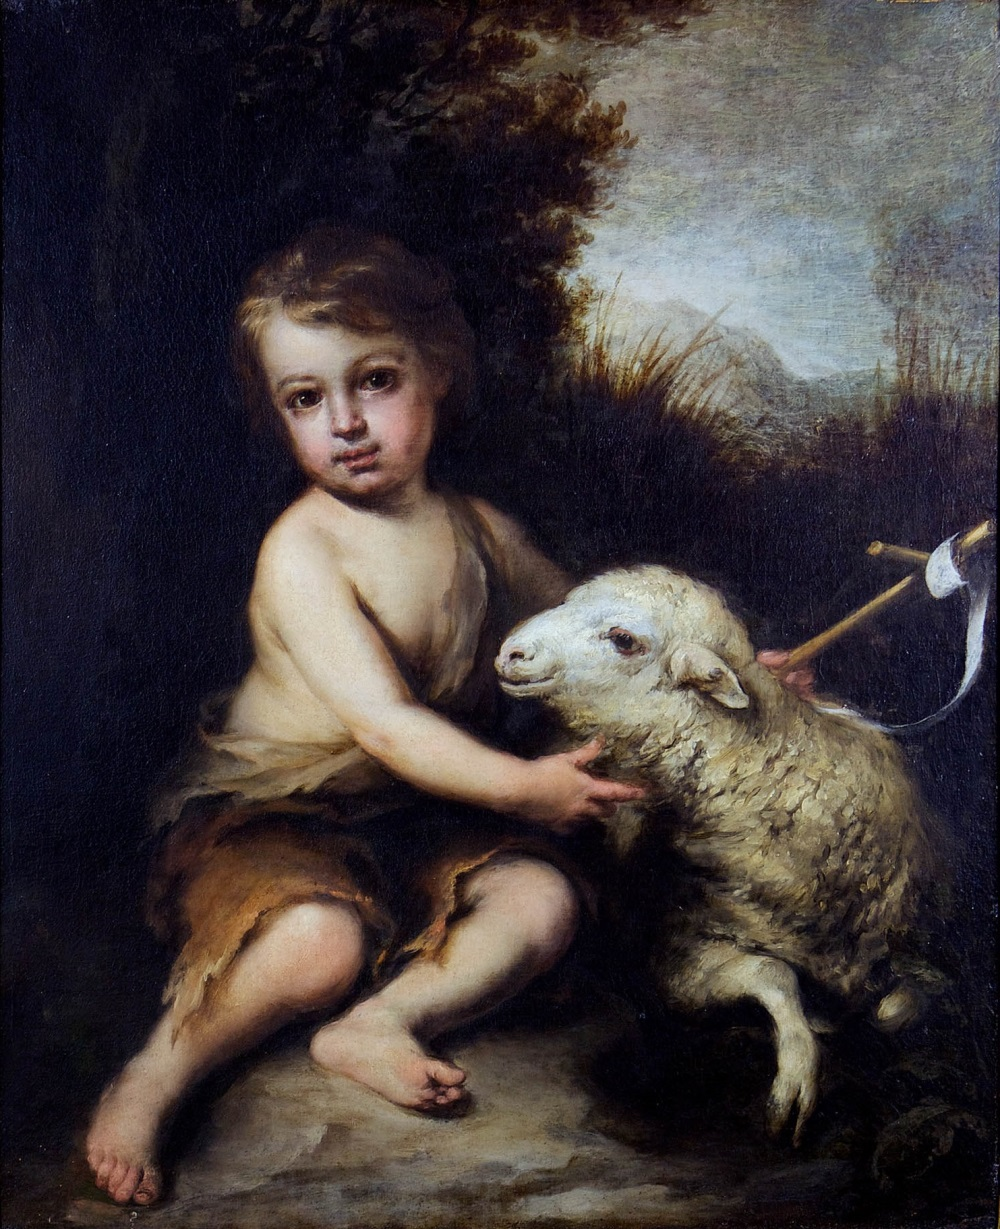 Murillo, The Infant St. John the Baptist in the Wilderness. Collection of Meadow Brook Hall, Michigan.